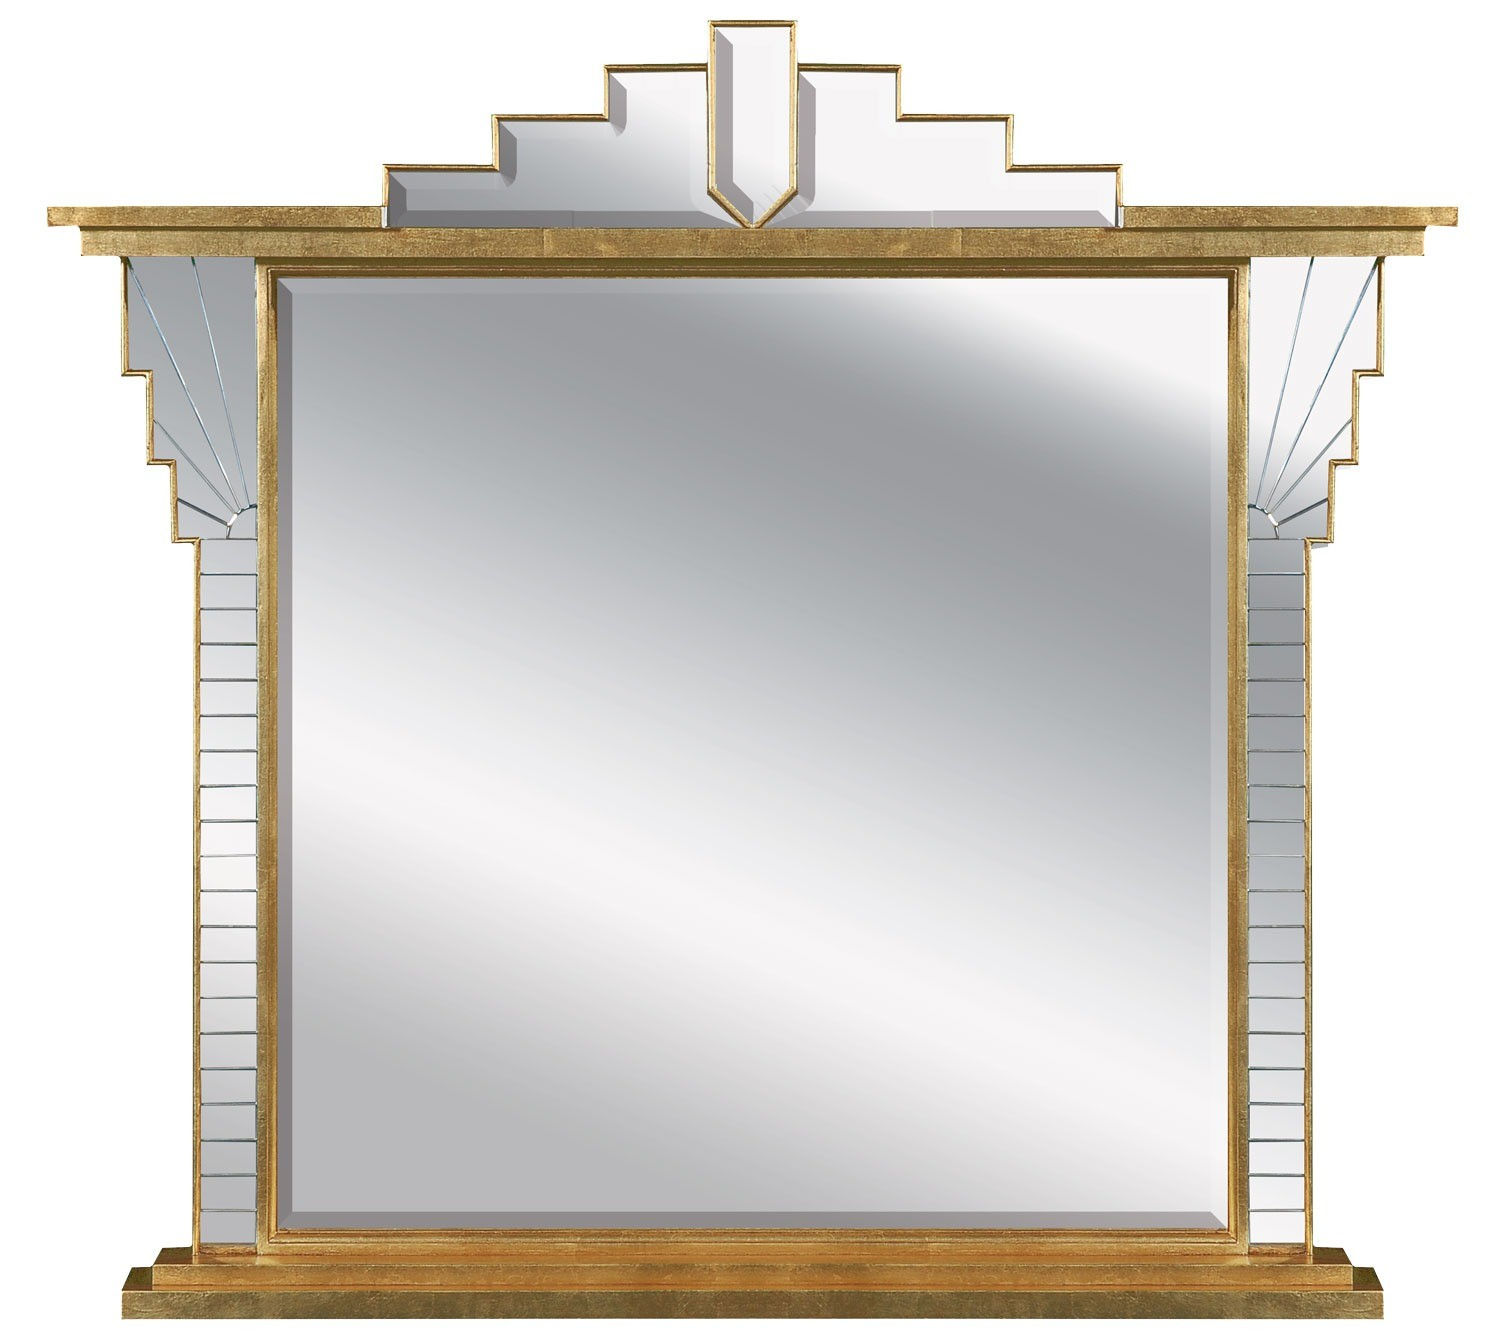 Art Deco style overmantel mirror - antique finish